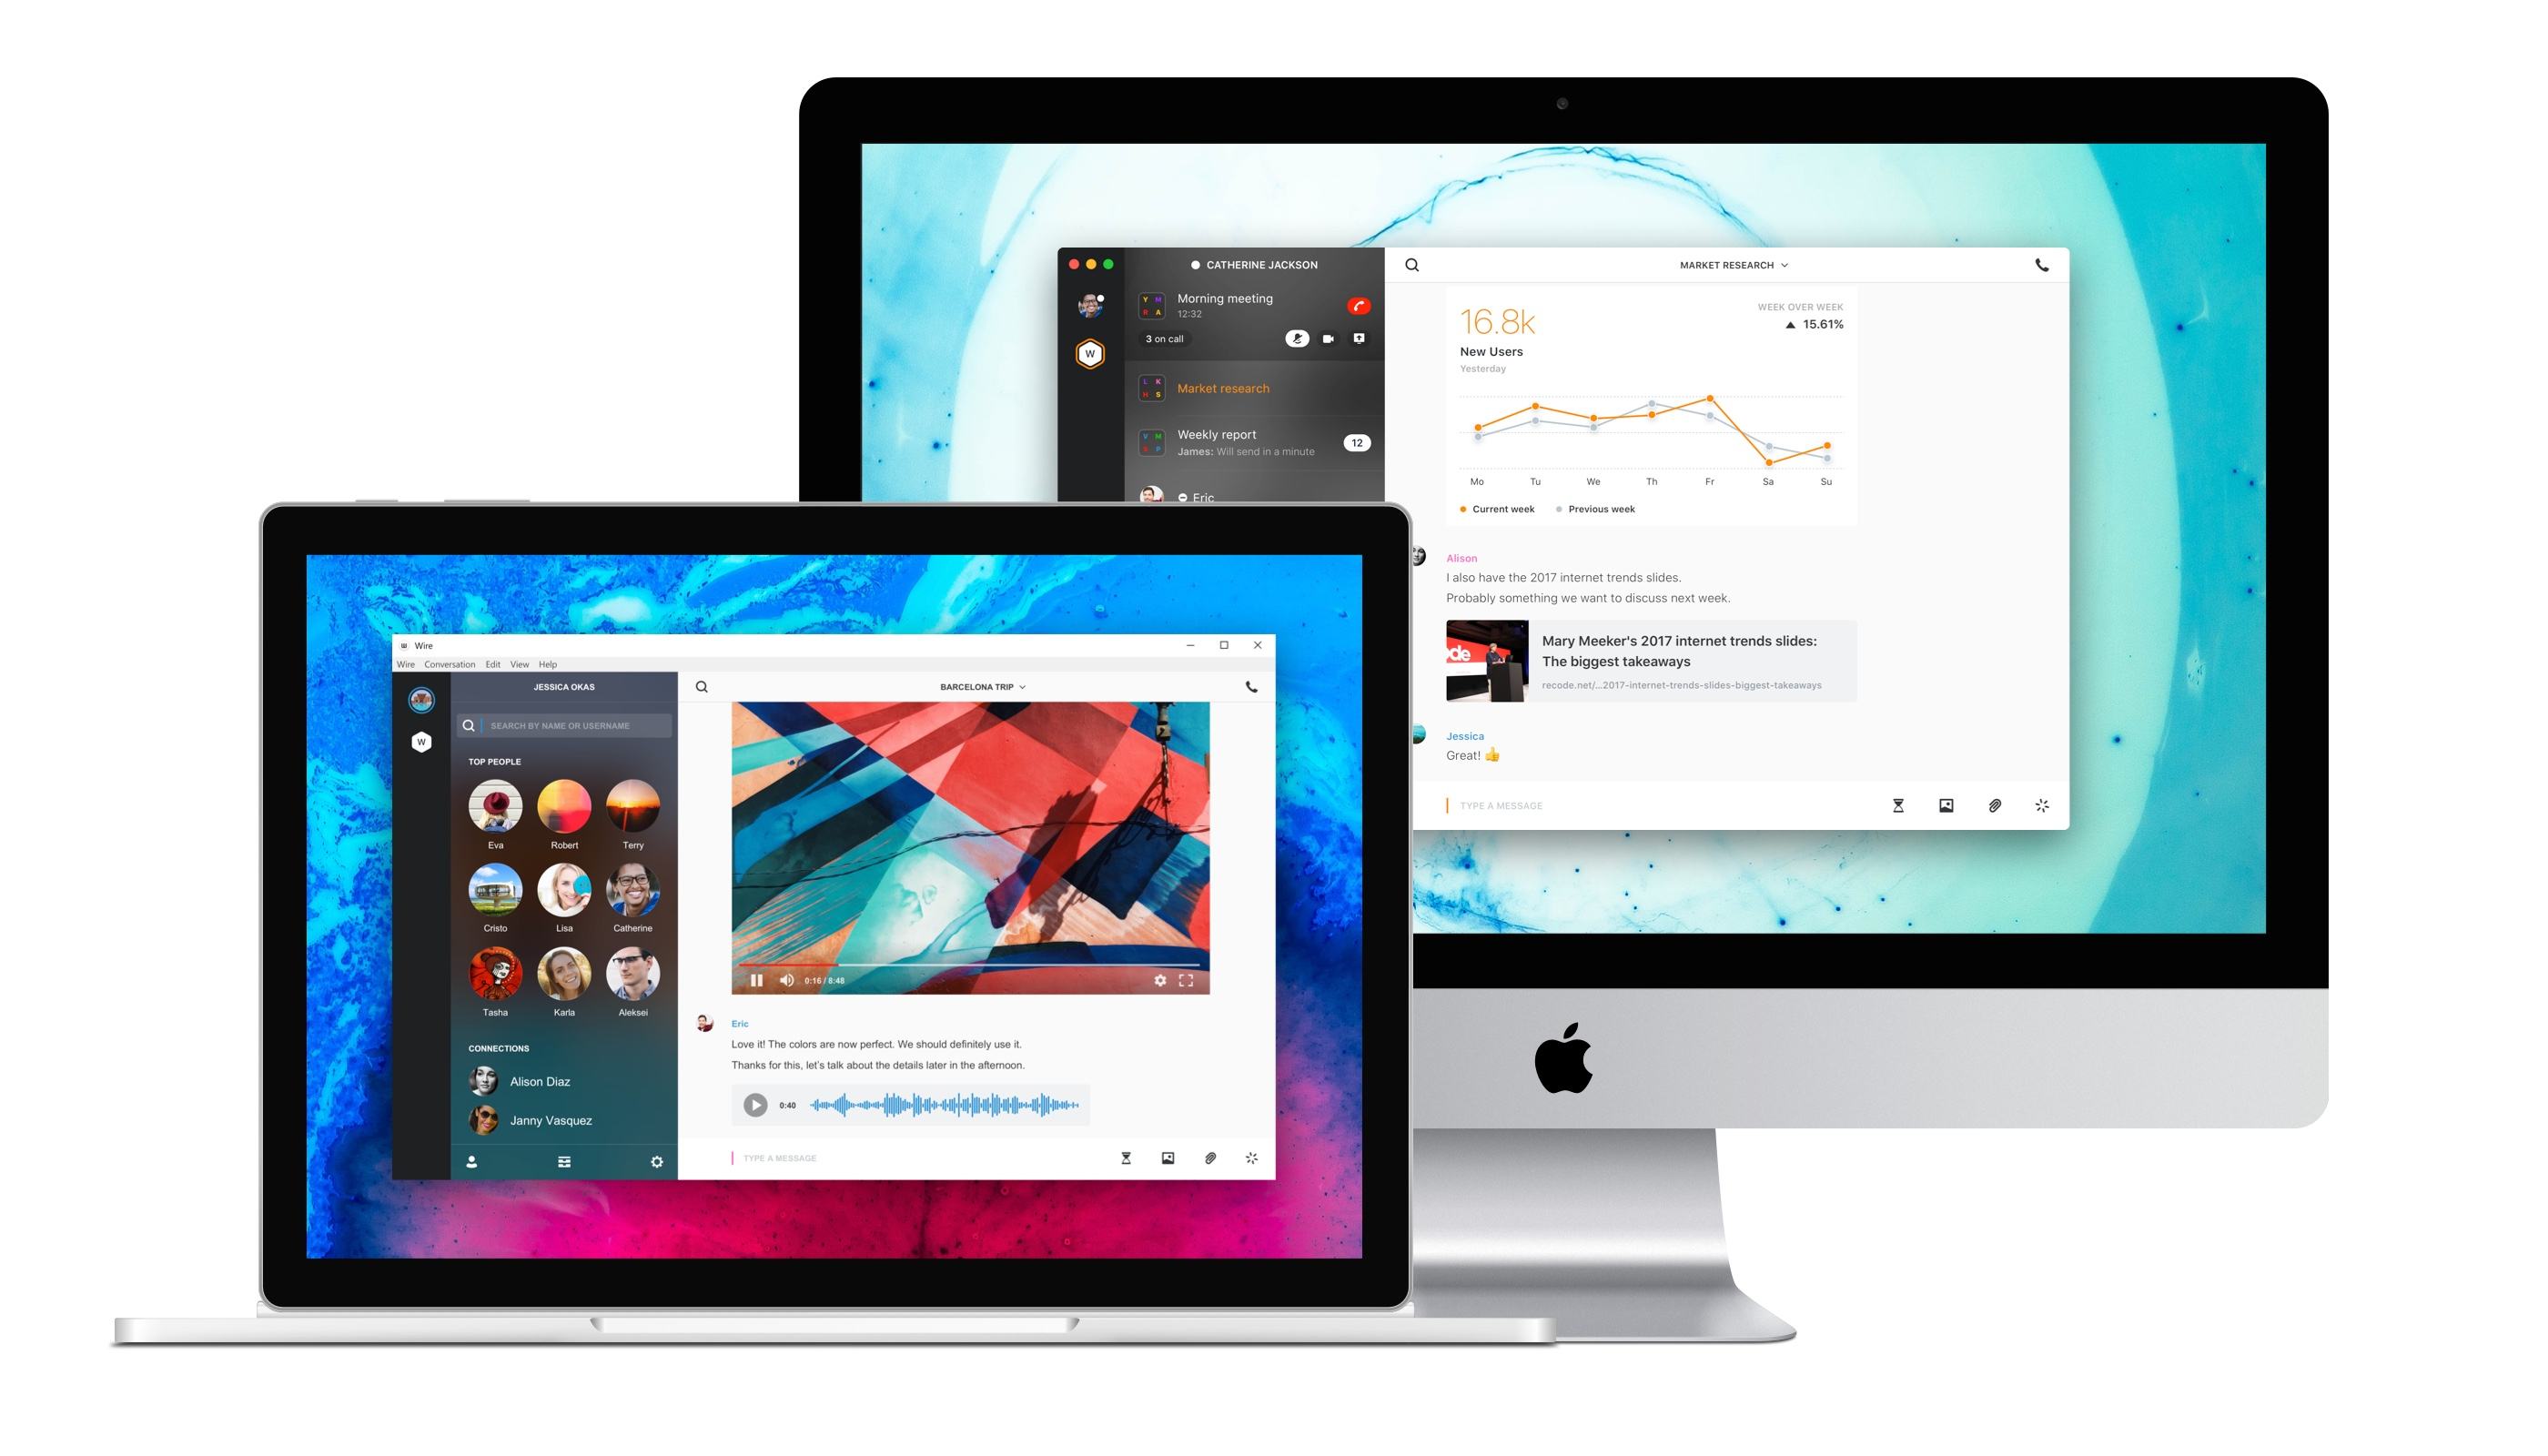 Desktop apps are available for Mac, Windows, and Linux. Wire also works directly in web browsers.